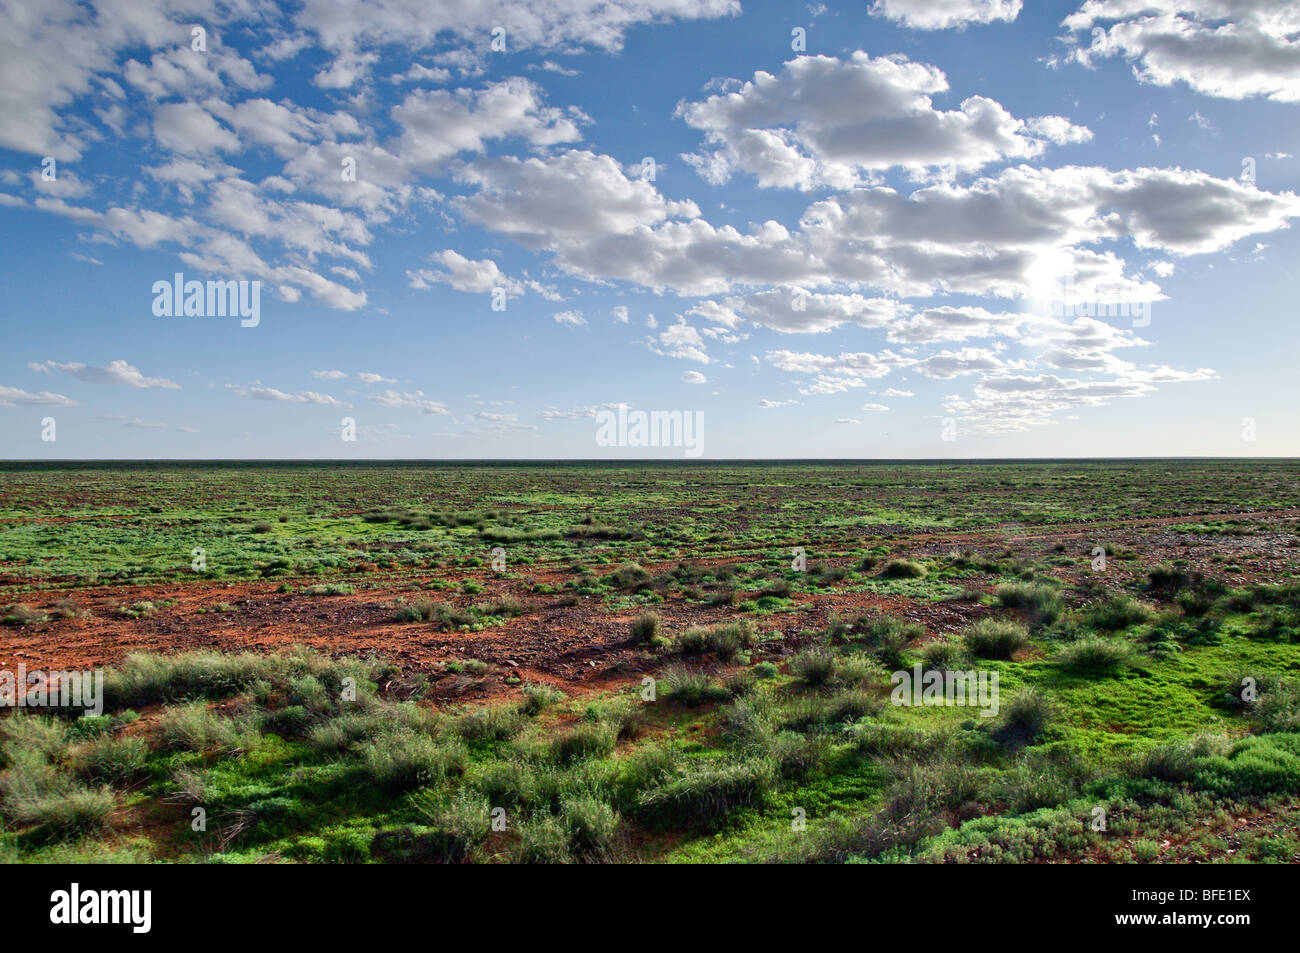 plants in the desert go green after rain - Stock Image